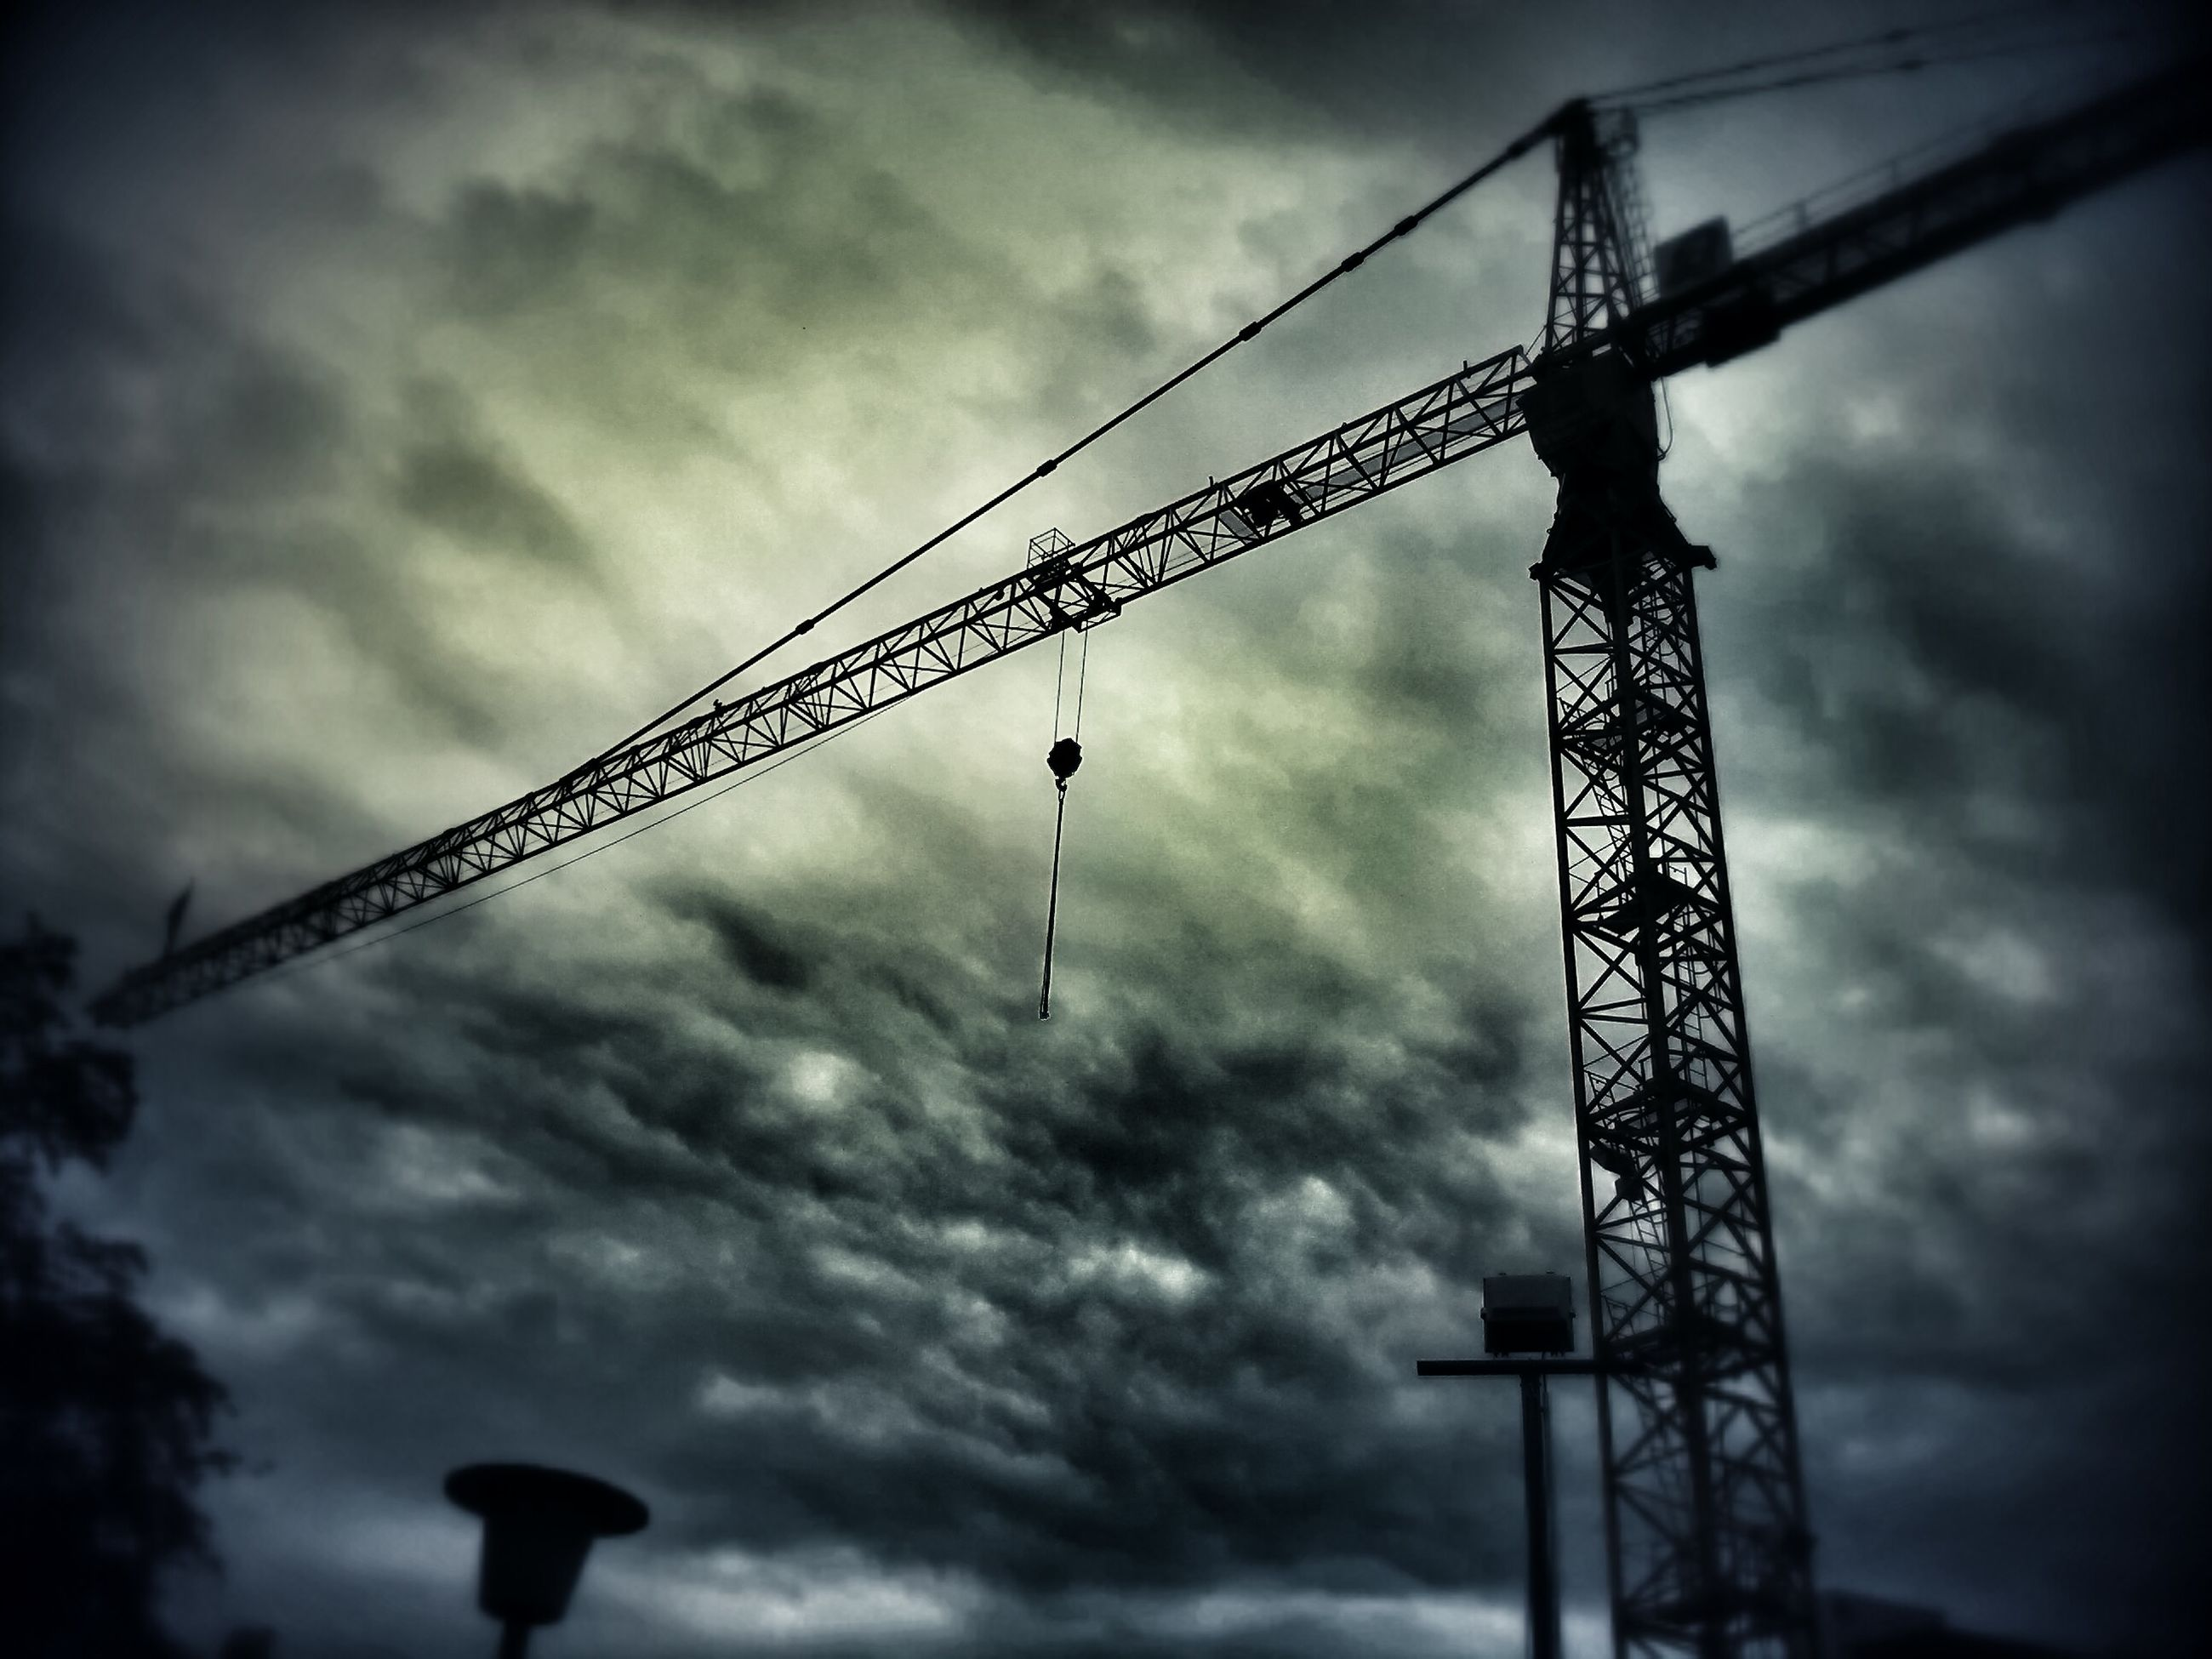 low angle view, sky, cloud - sky, cloudy, silhouette, cloud, metal, crane - construction machinery, overcast, crane, weather, connection, built structure, construction site, development, metallic, dusk, outdoors, no people, day